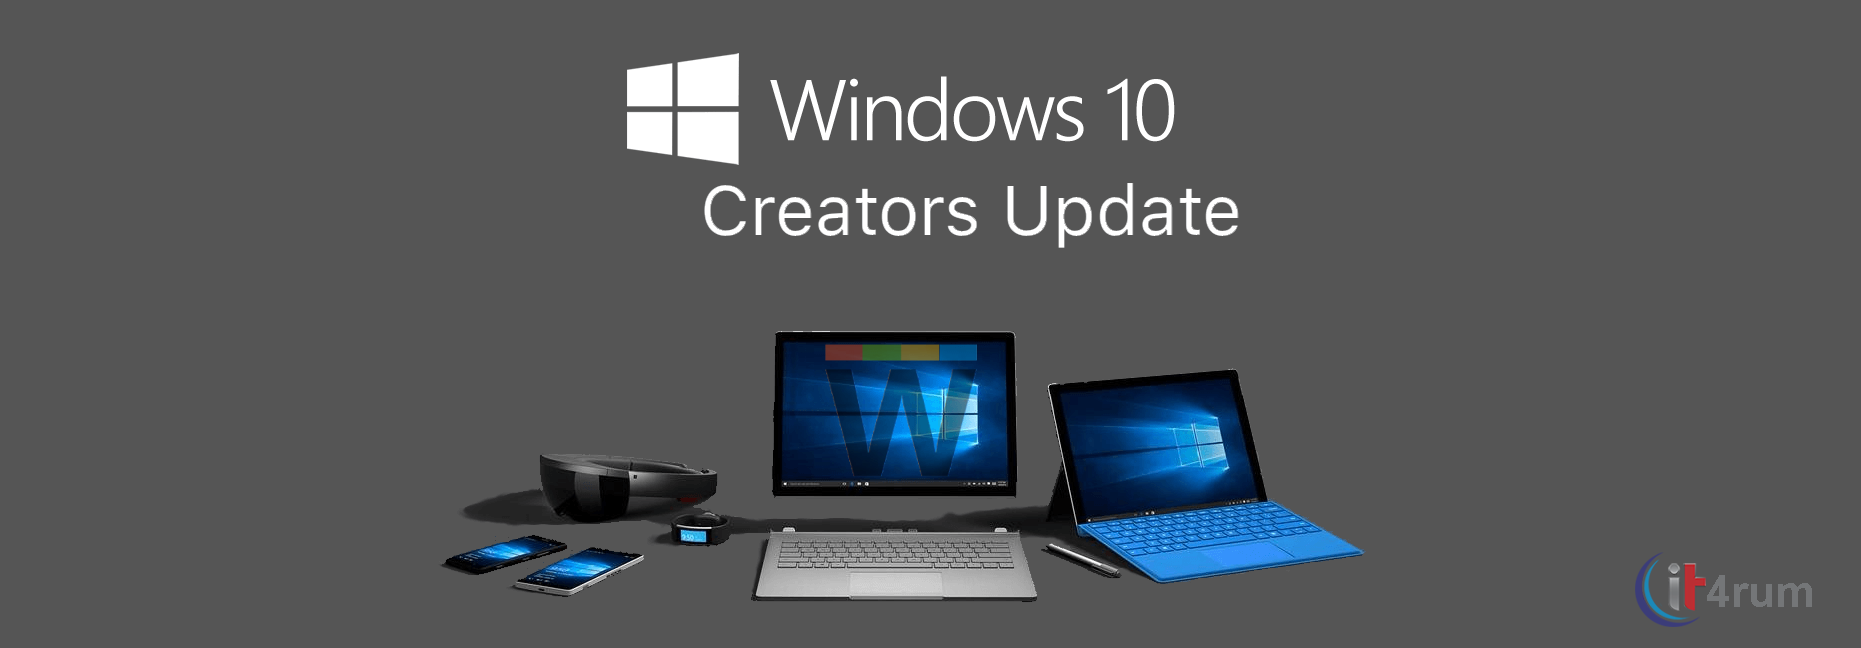 Download Windows 10 Creators Update 1703 [X86 + X64] 1 Link Tốc Độ Cao